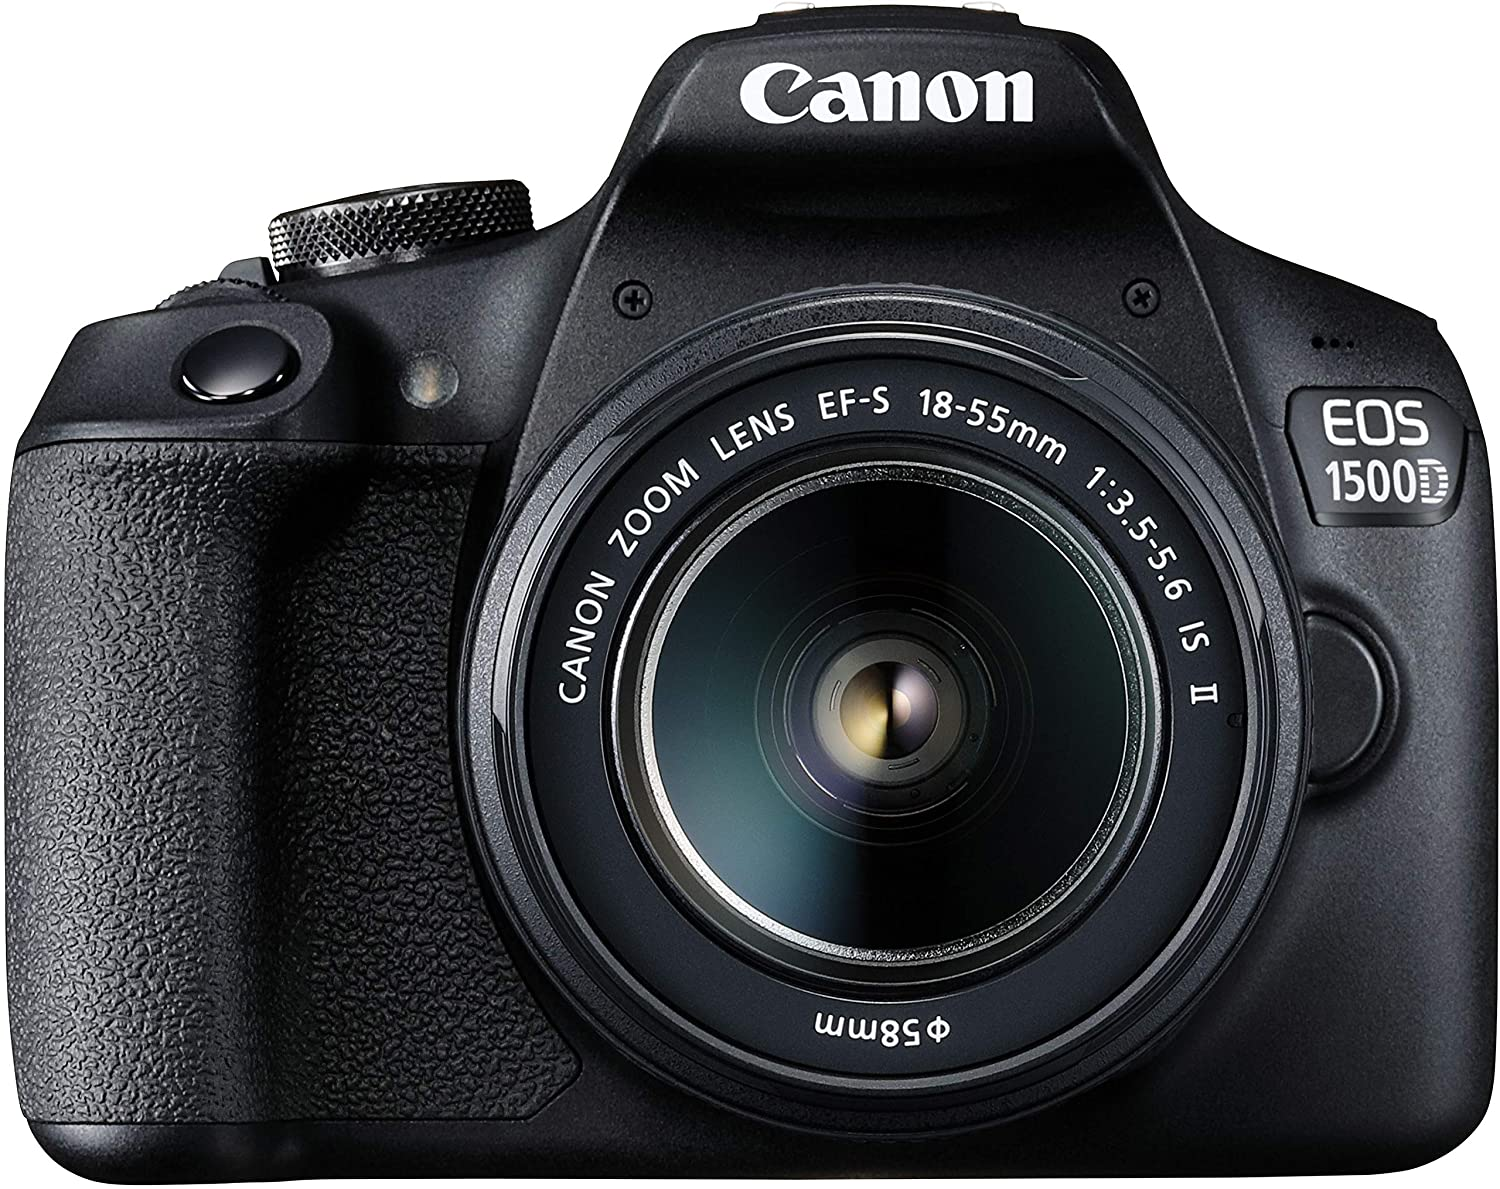 Canon EOS 1500D Digital SLR Camera (Black) with EF S18-55